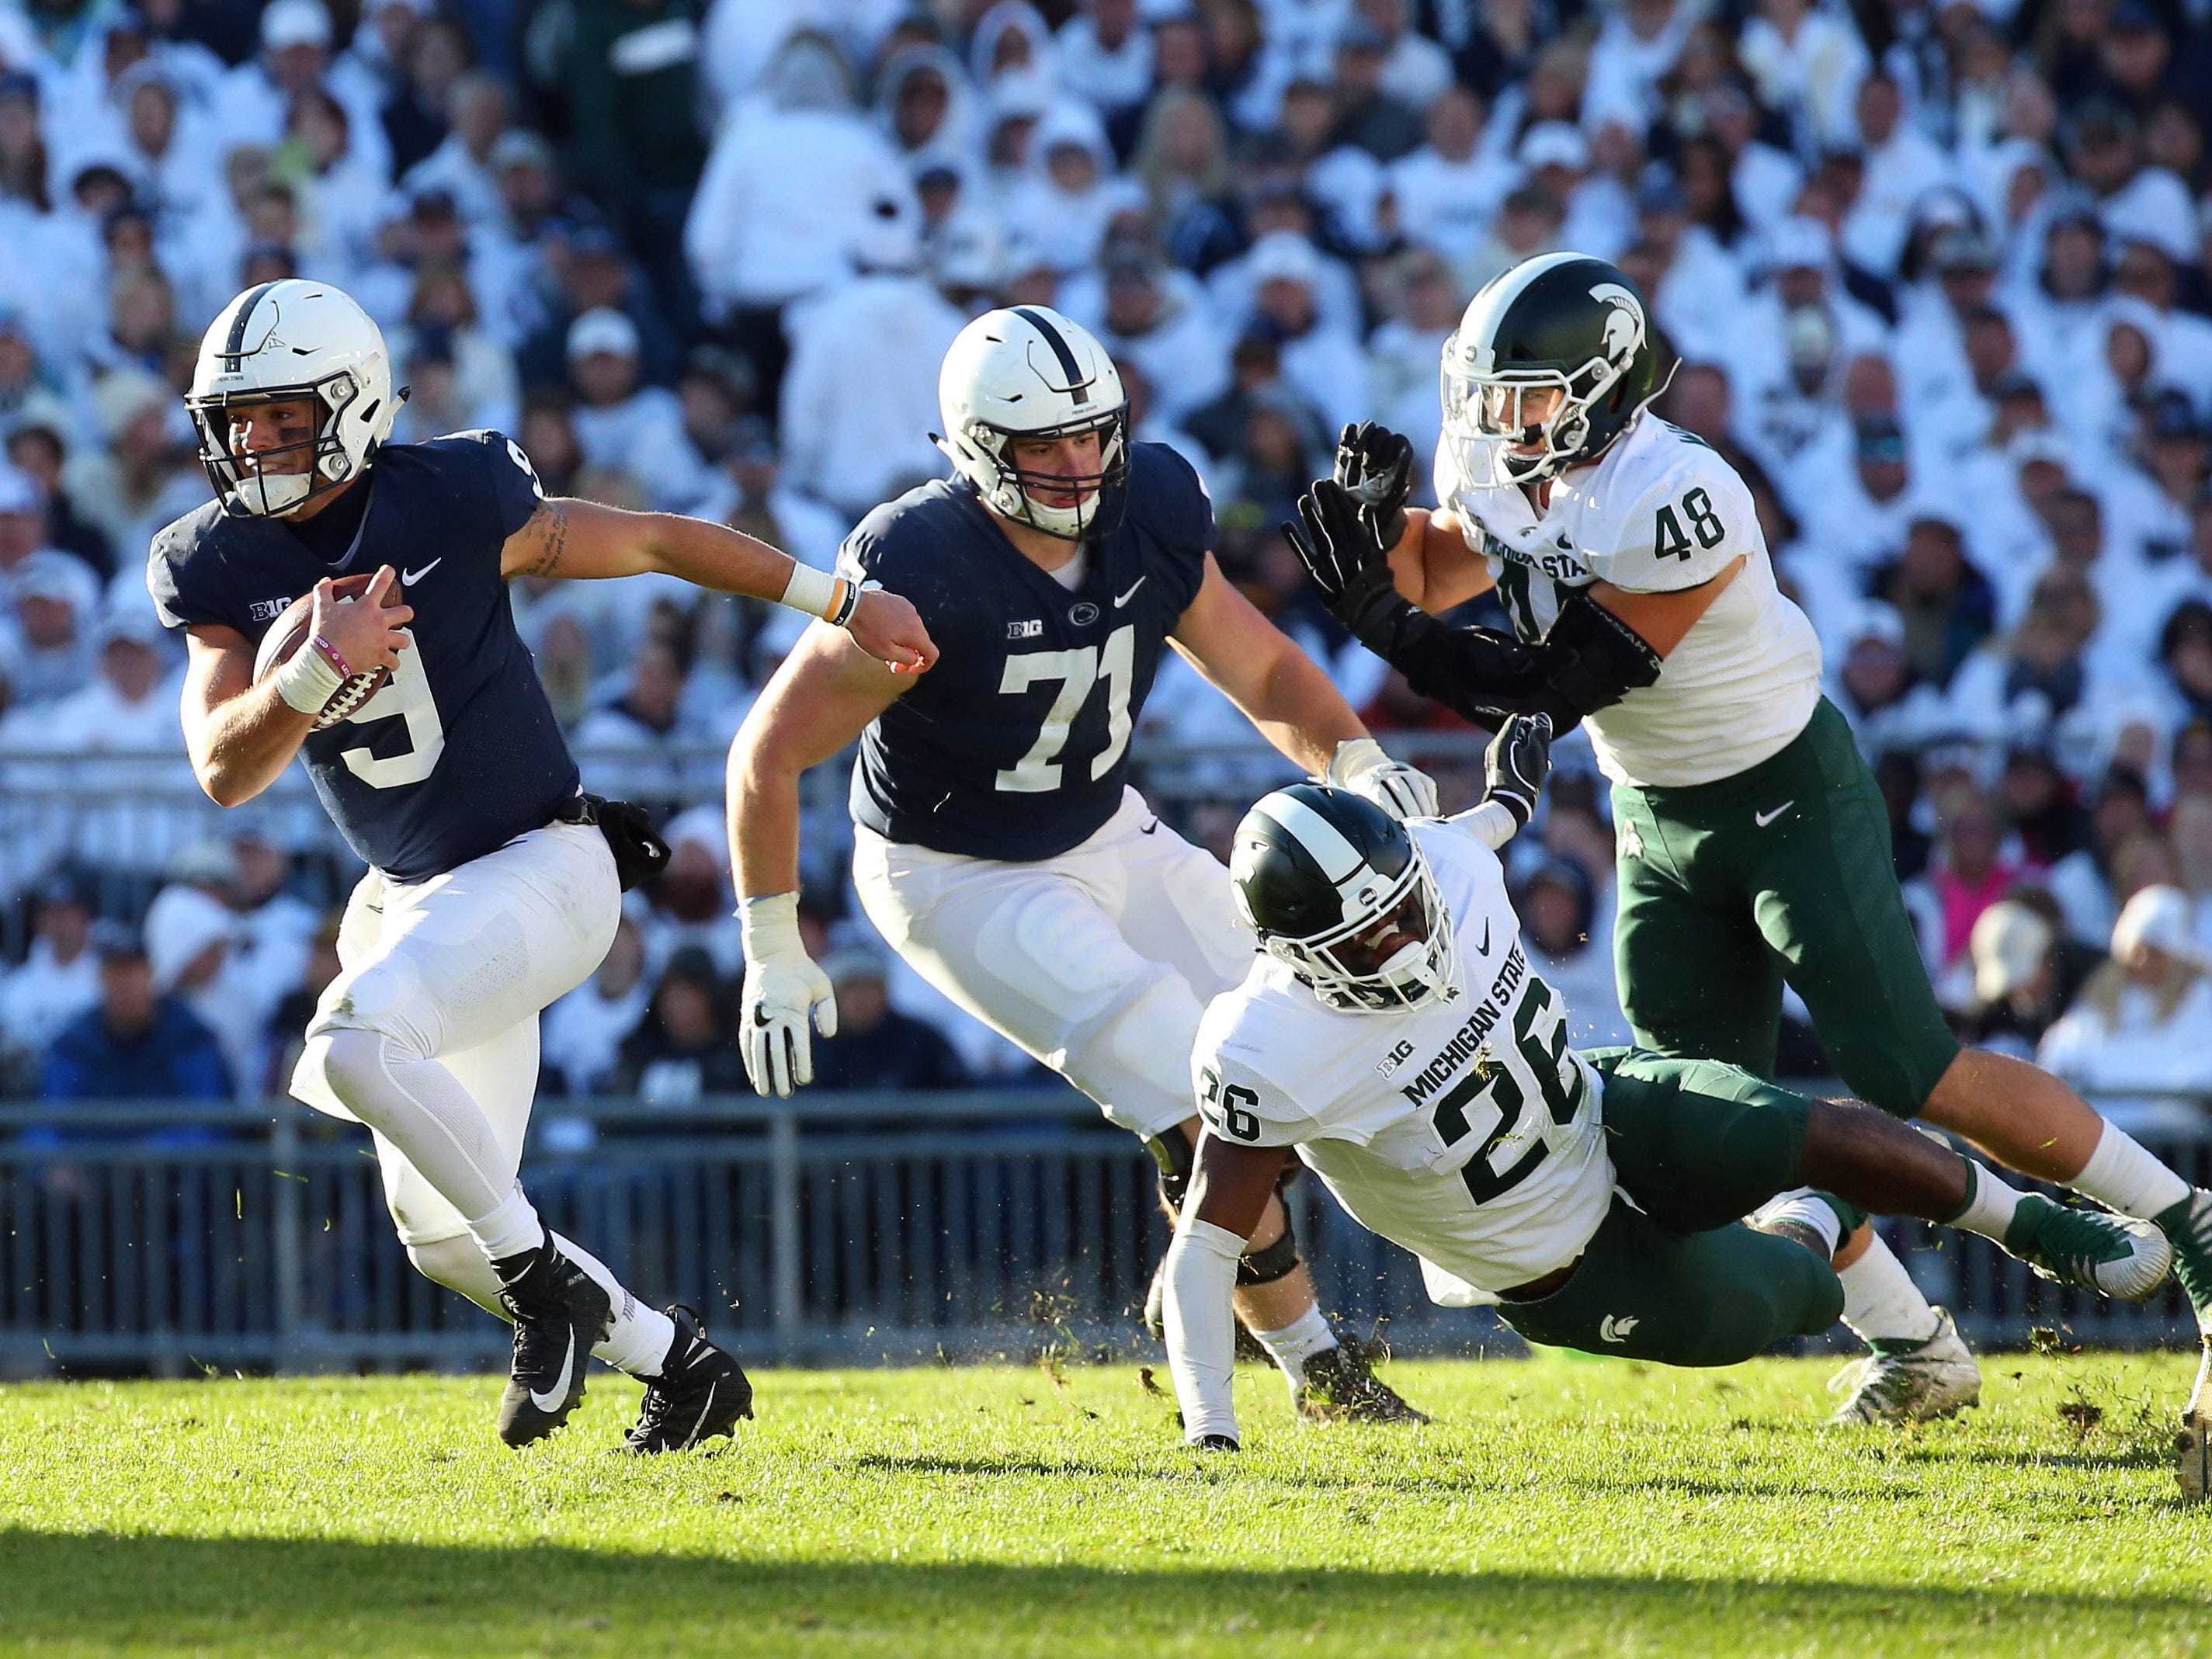 Penn State Nittany Lions quarterback Trace McSorley (9) runs with the ball against the Michigan State Spartans during the second quarter at Beaver Stadium.